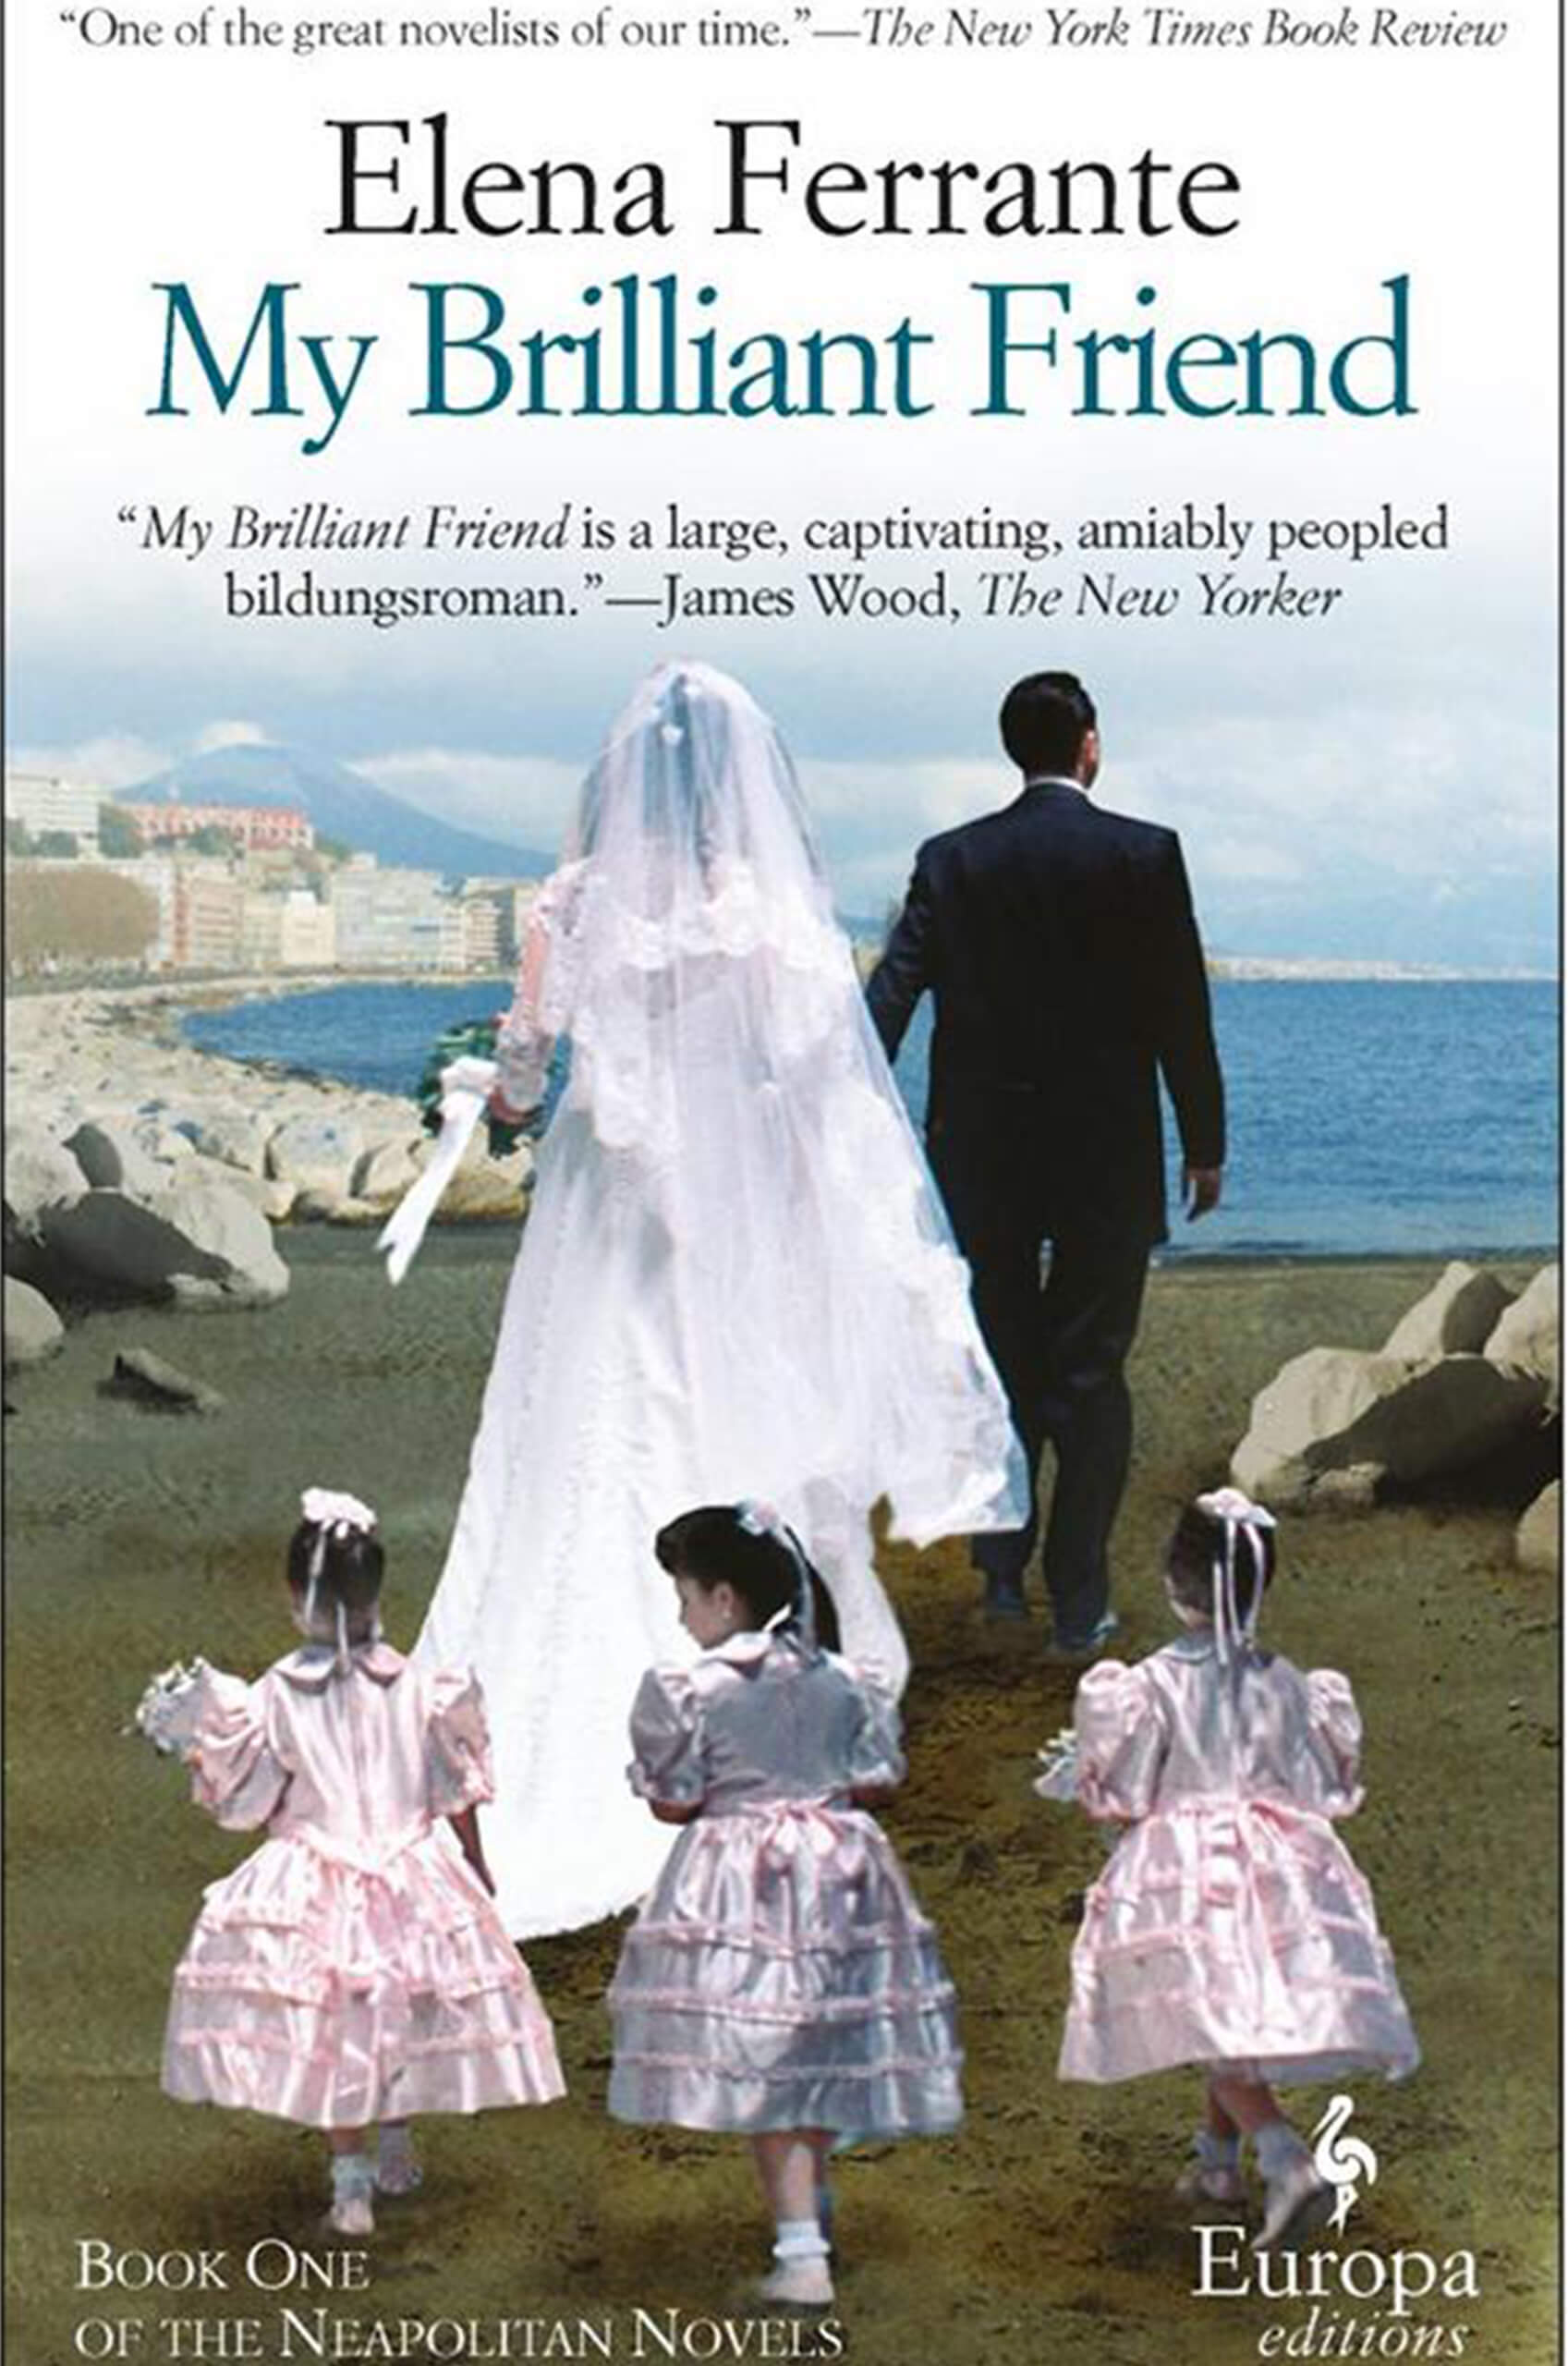 My Brilliant Friend by Elena Ferrante